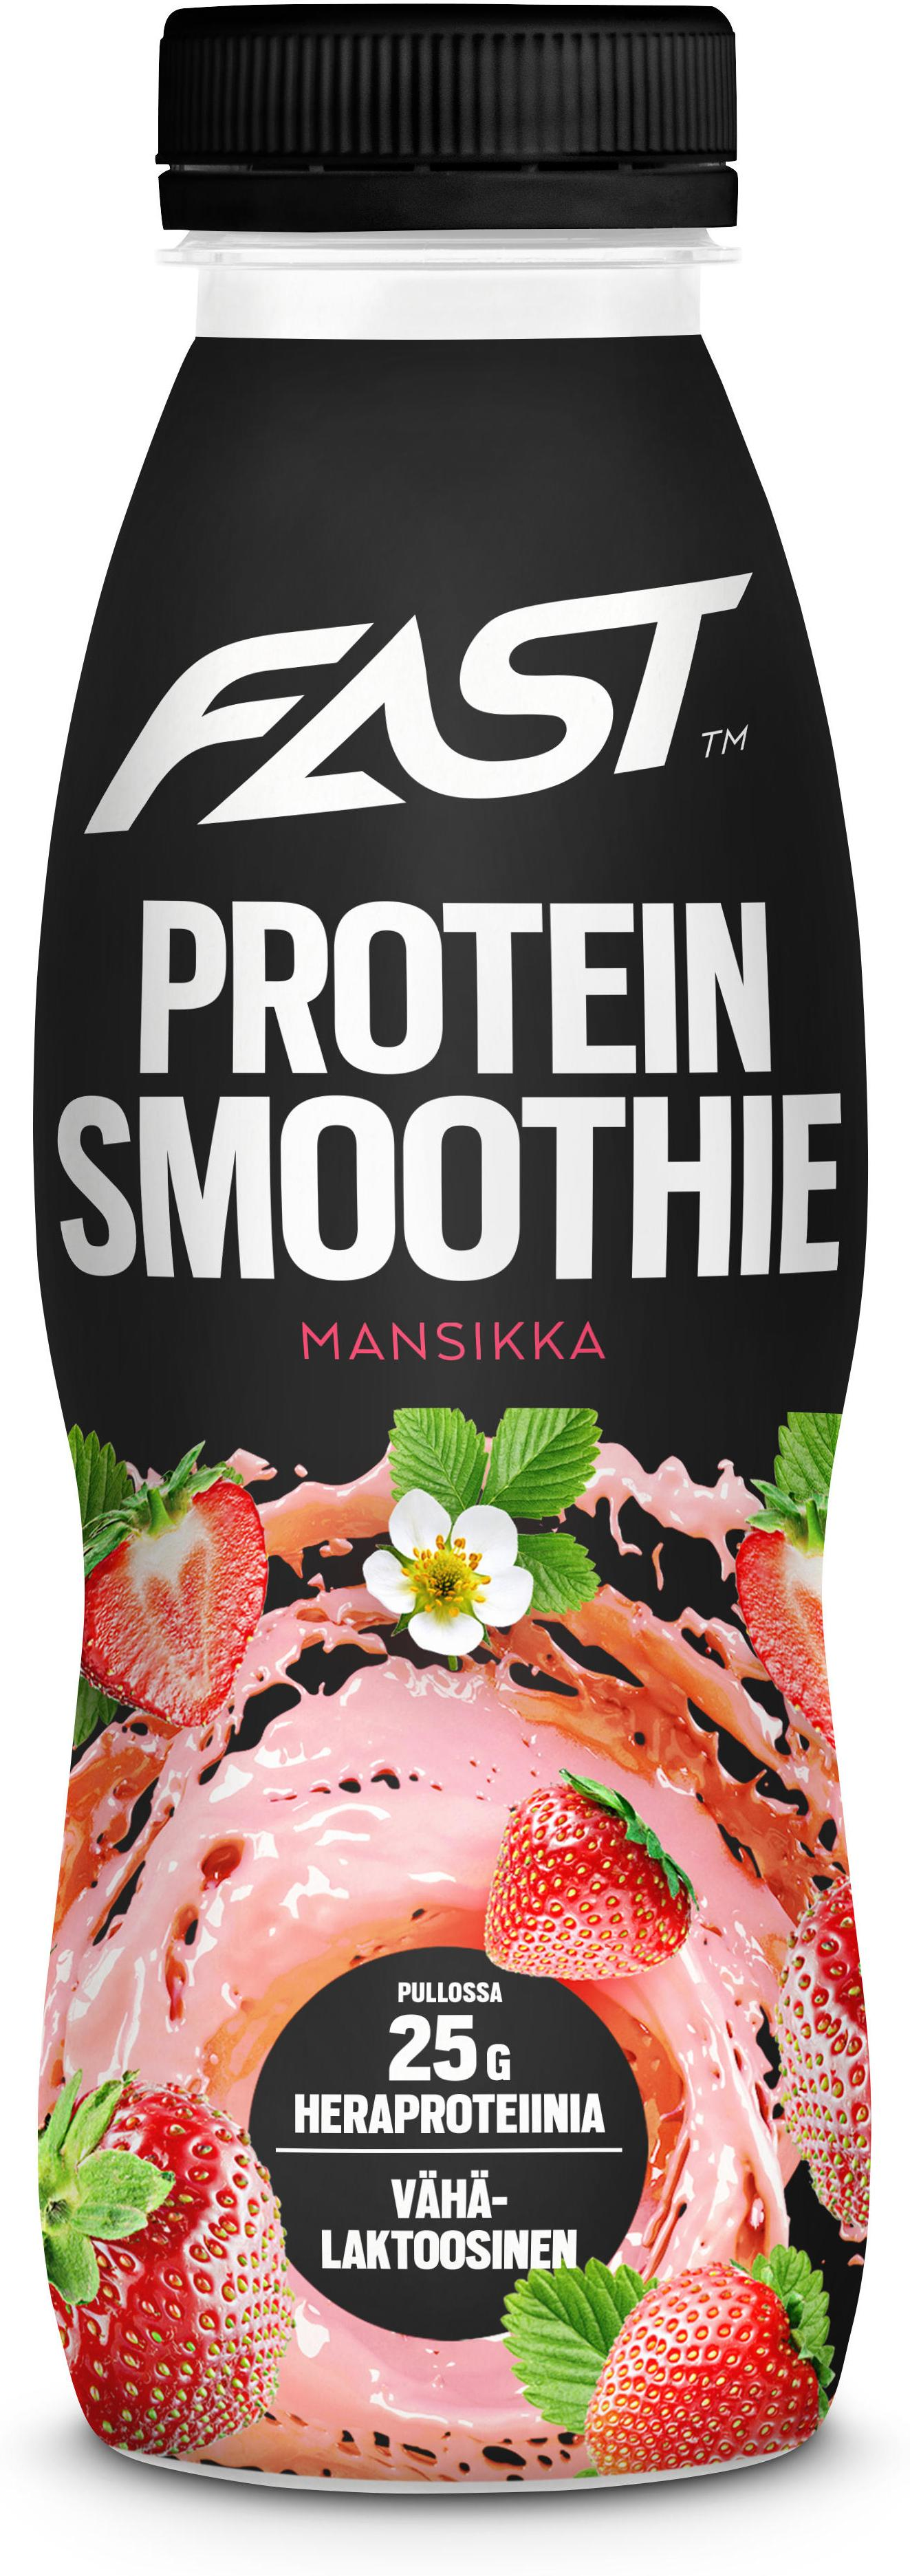 Piće FAST Natural Protein Smoothie strawberry 330 ml